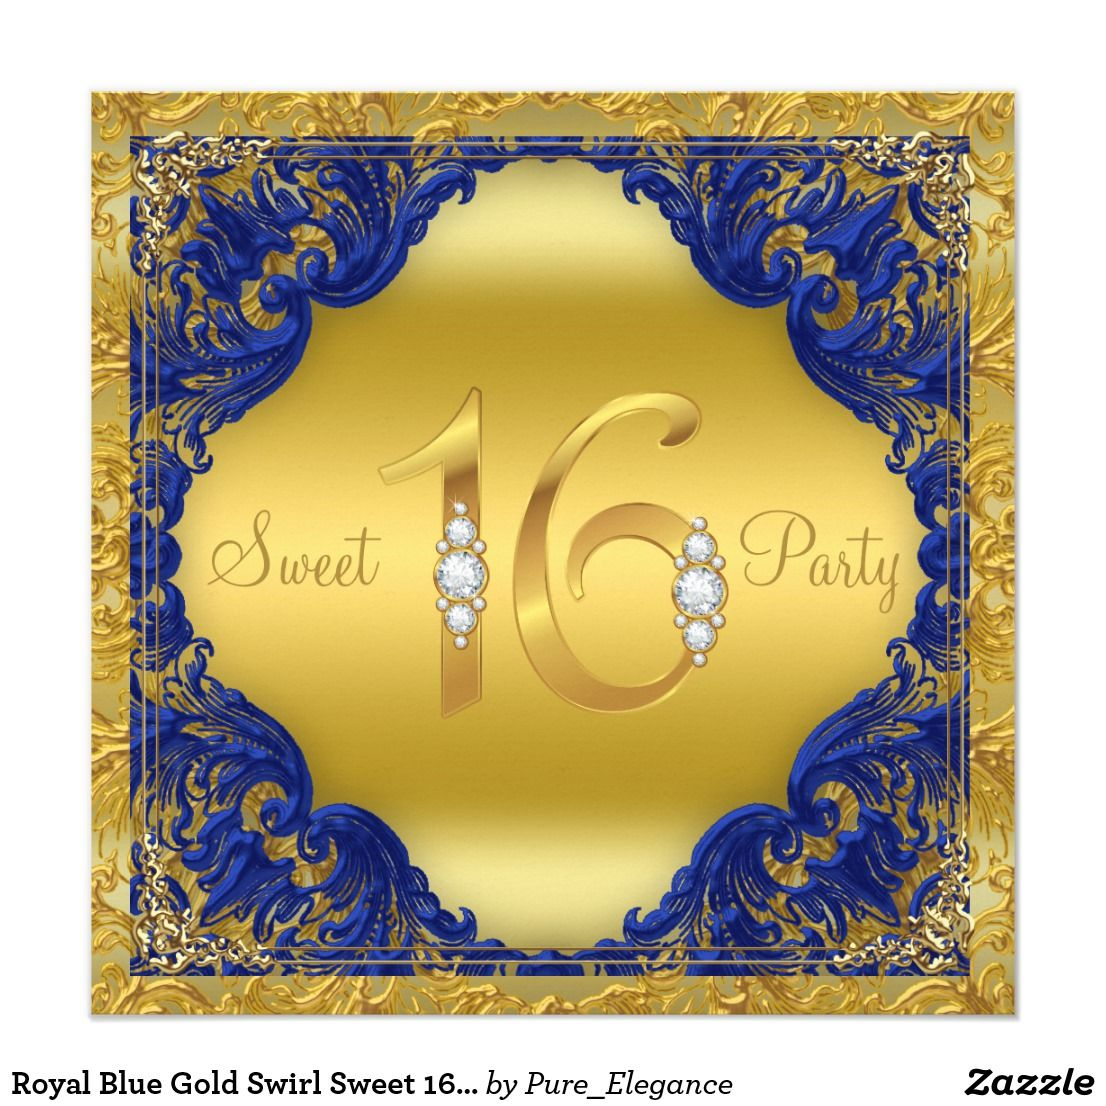 Royal Blue Gold Swirl Sweet 16 Party Card Royal Blue And Gold Sweet